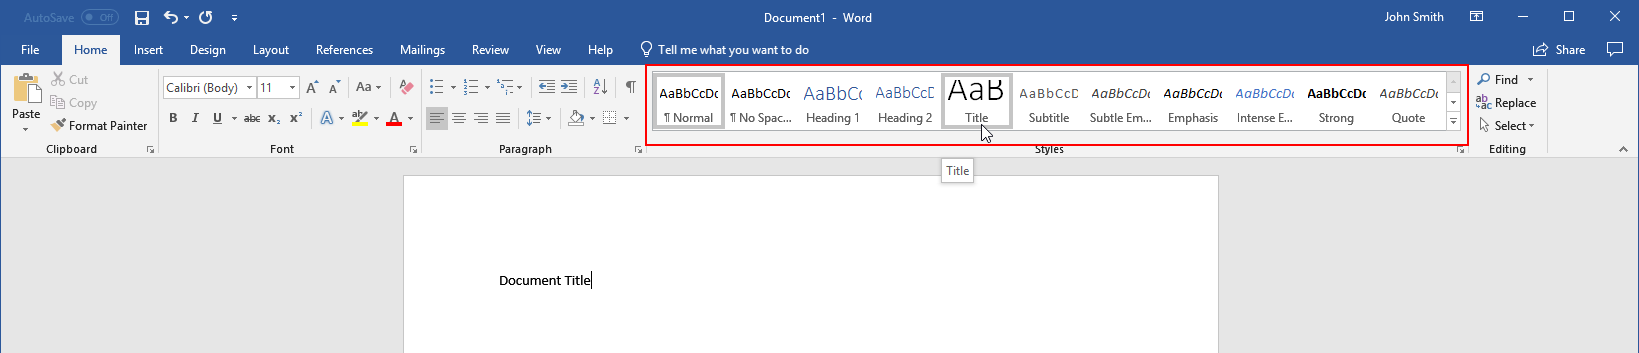 getting started with word 15